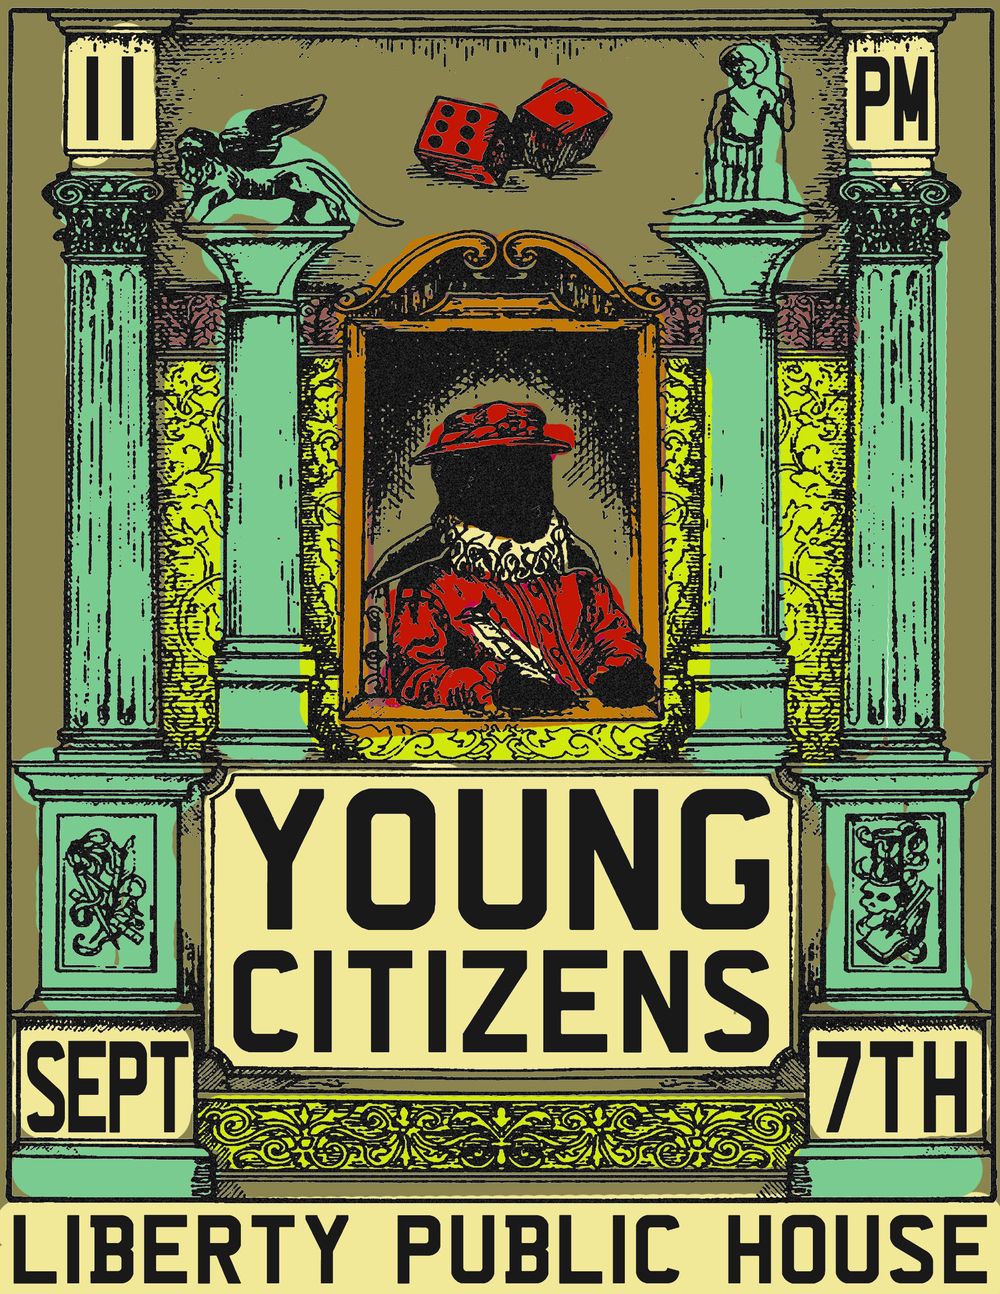 YOUNG CITIZENS Sept 7.jpg